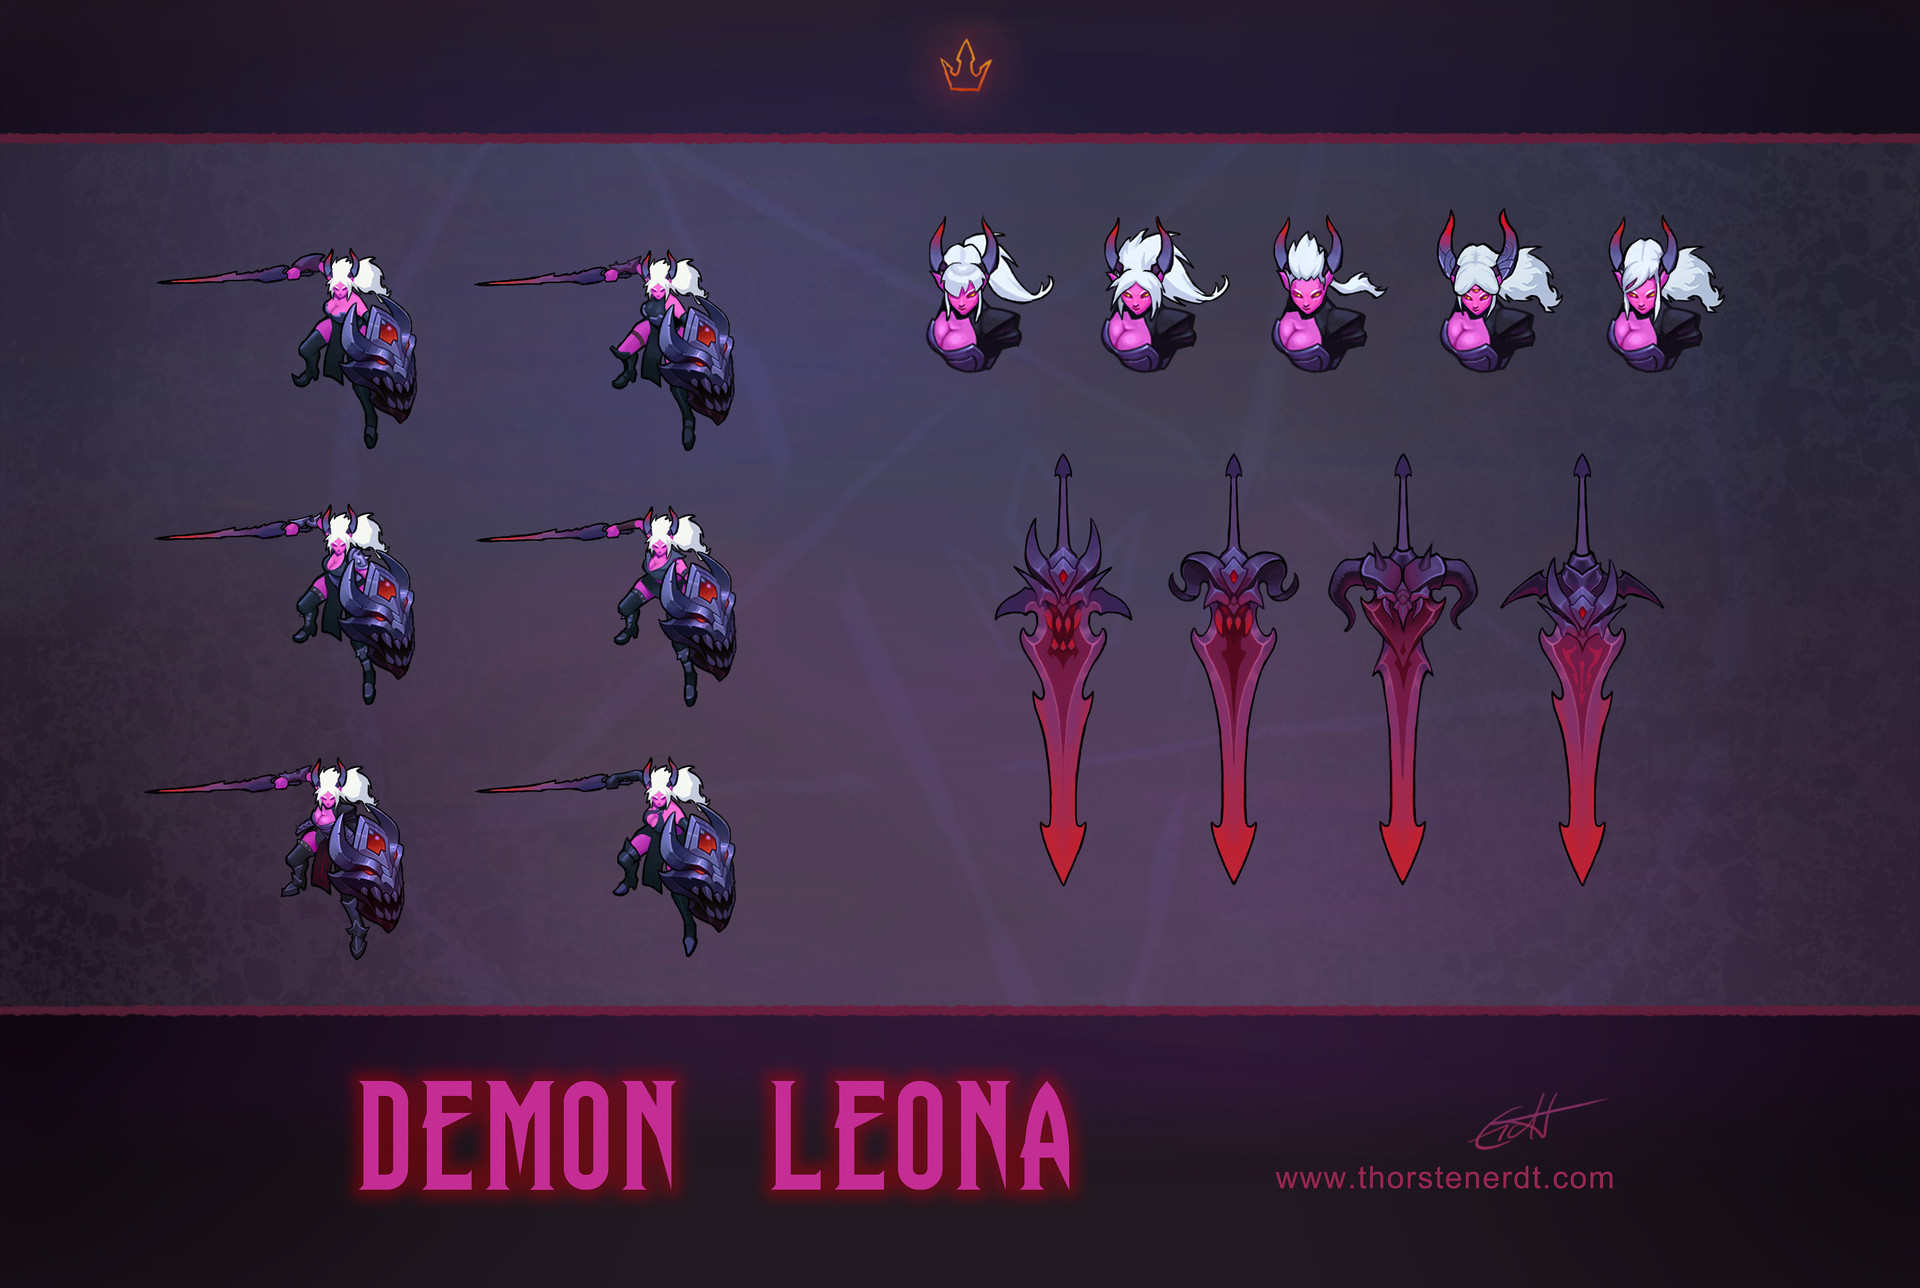 Thorsten erdt demon leona concepts